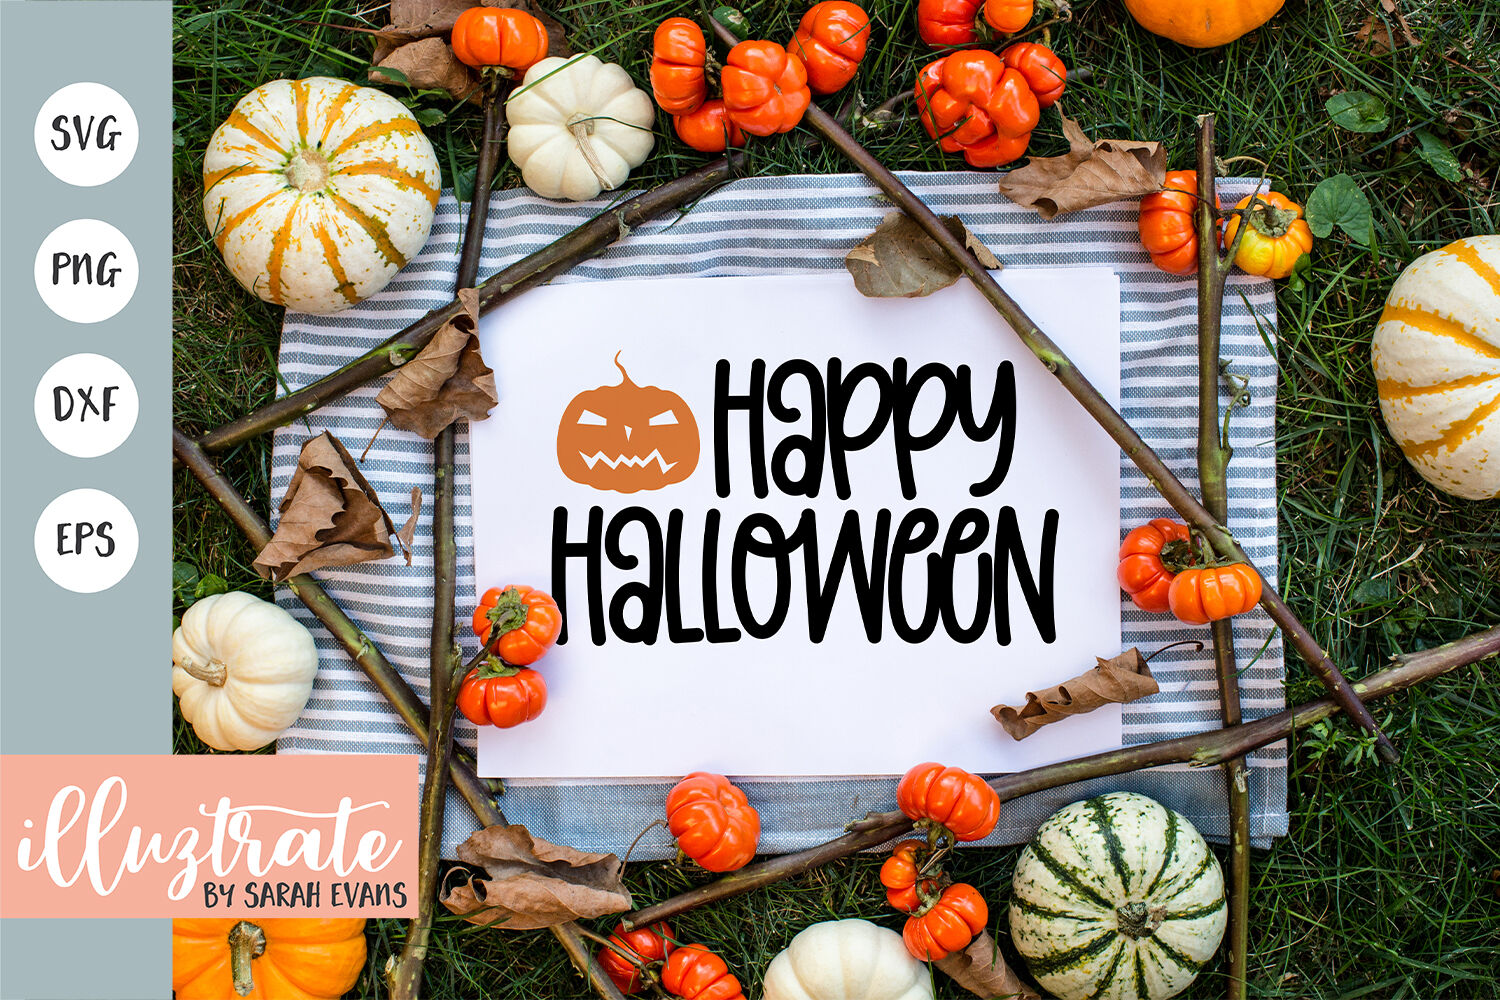 Happy Halloween Svg Cut Files Halloween Svg Cut Files By Illuztrateuk Thehungryjpeg Com